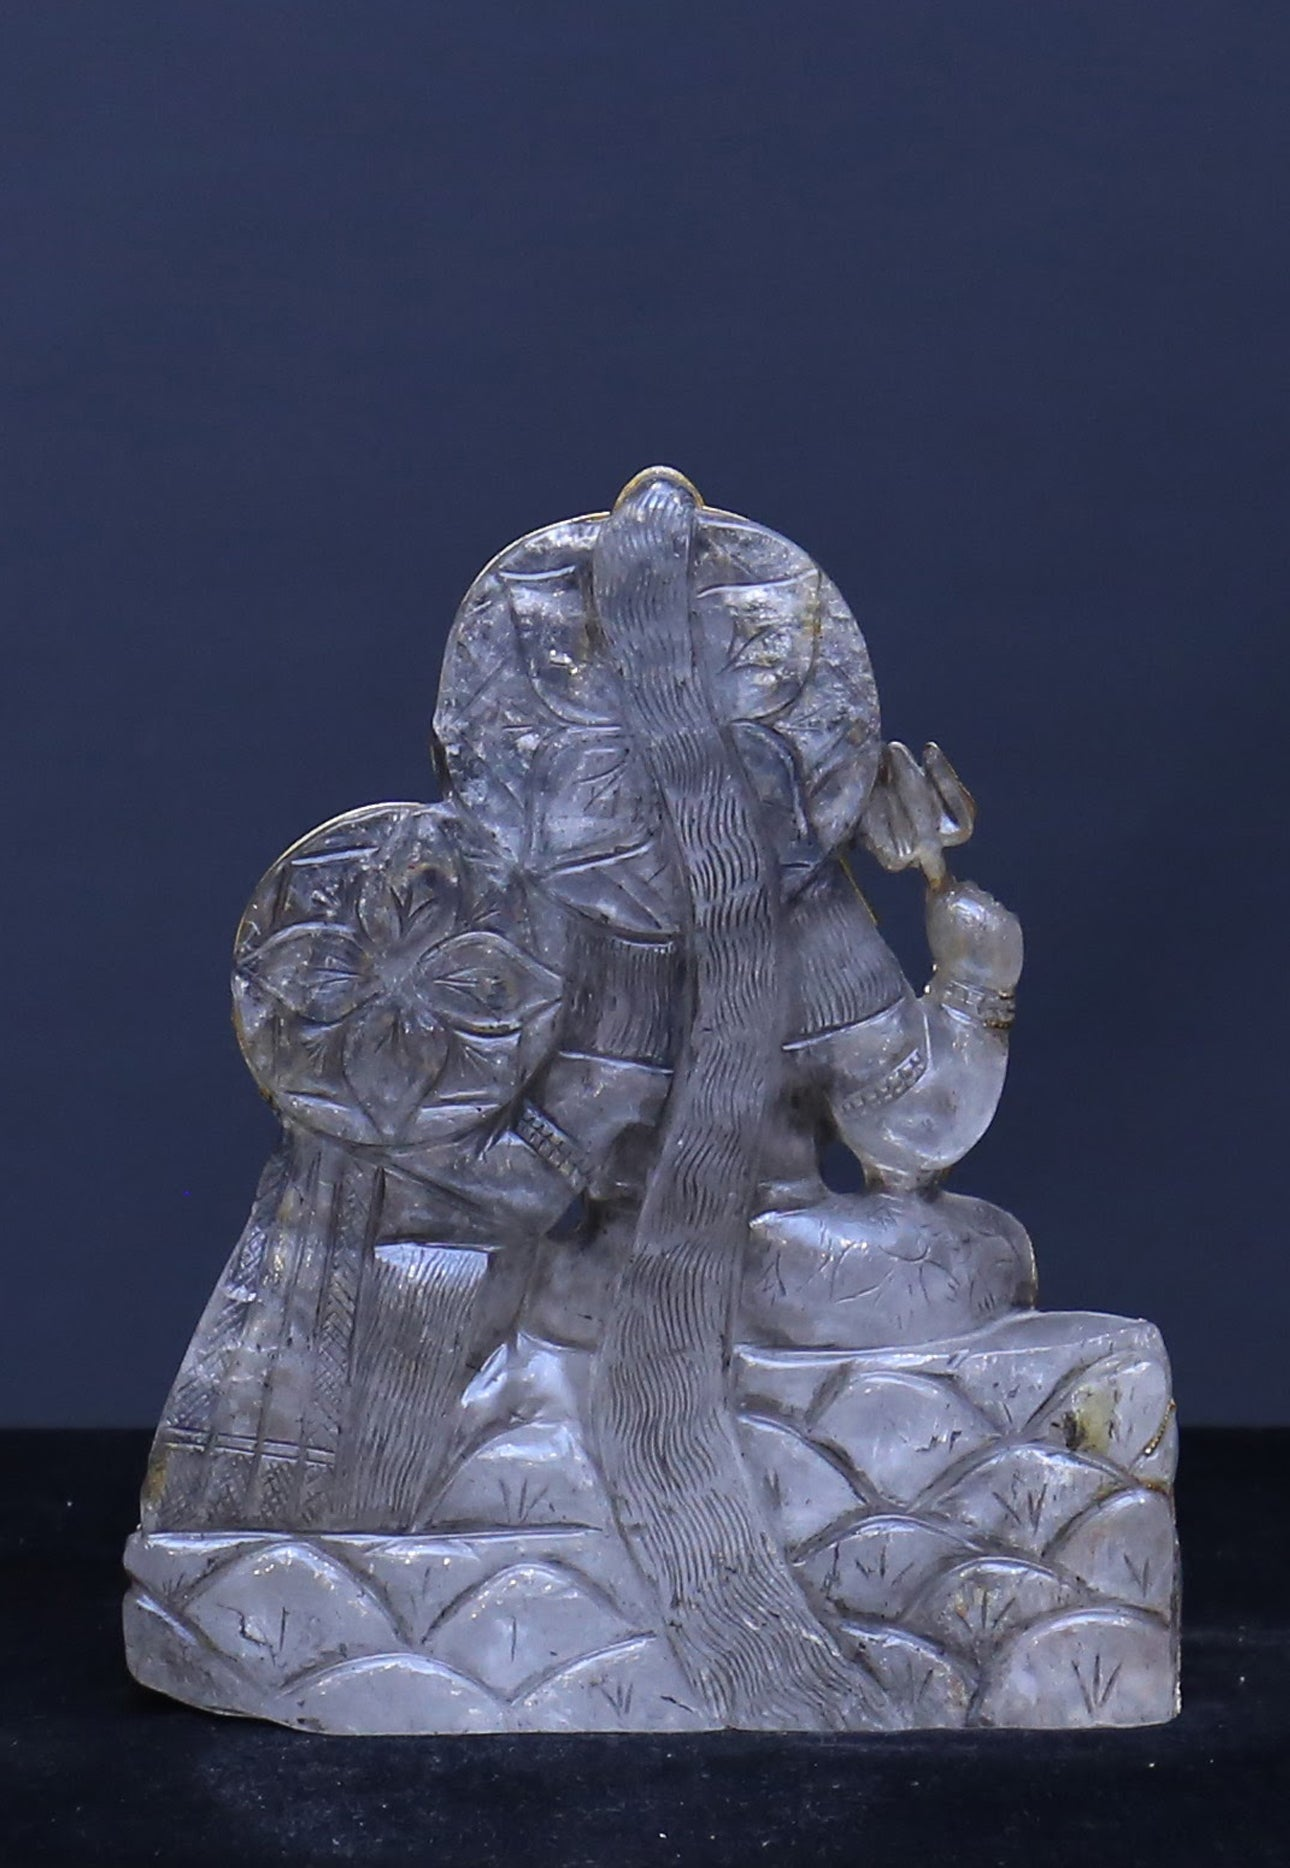 Lord Shiva and Parvathi and Ganesha - Tibet Arts & Healing